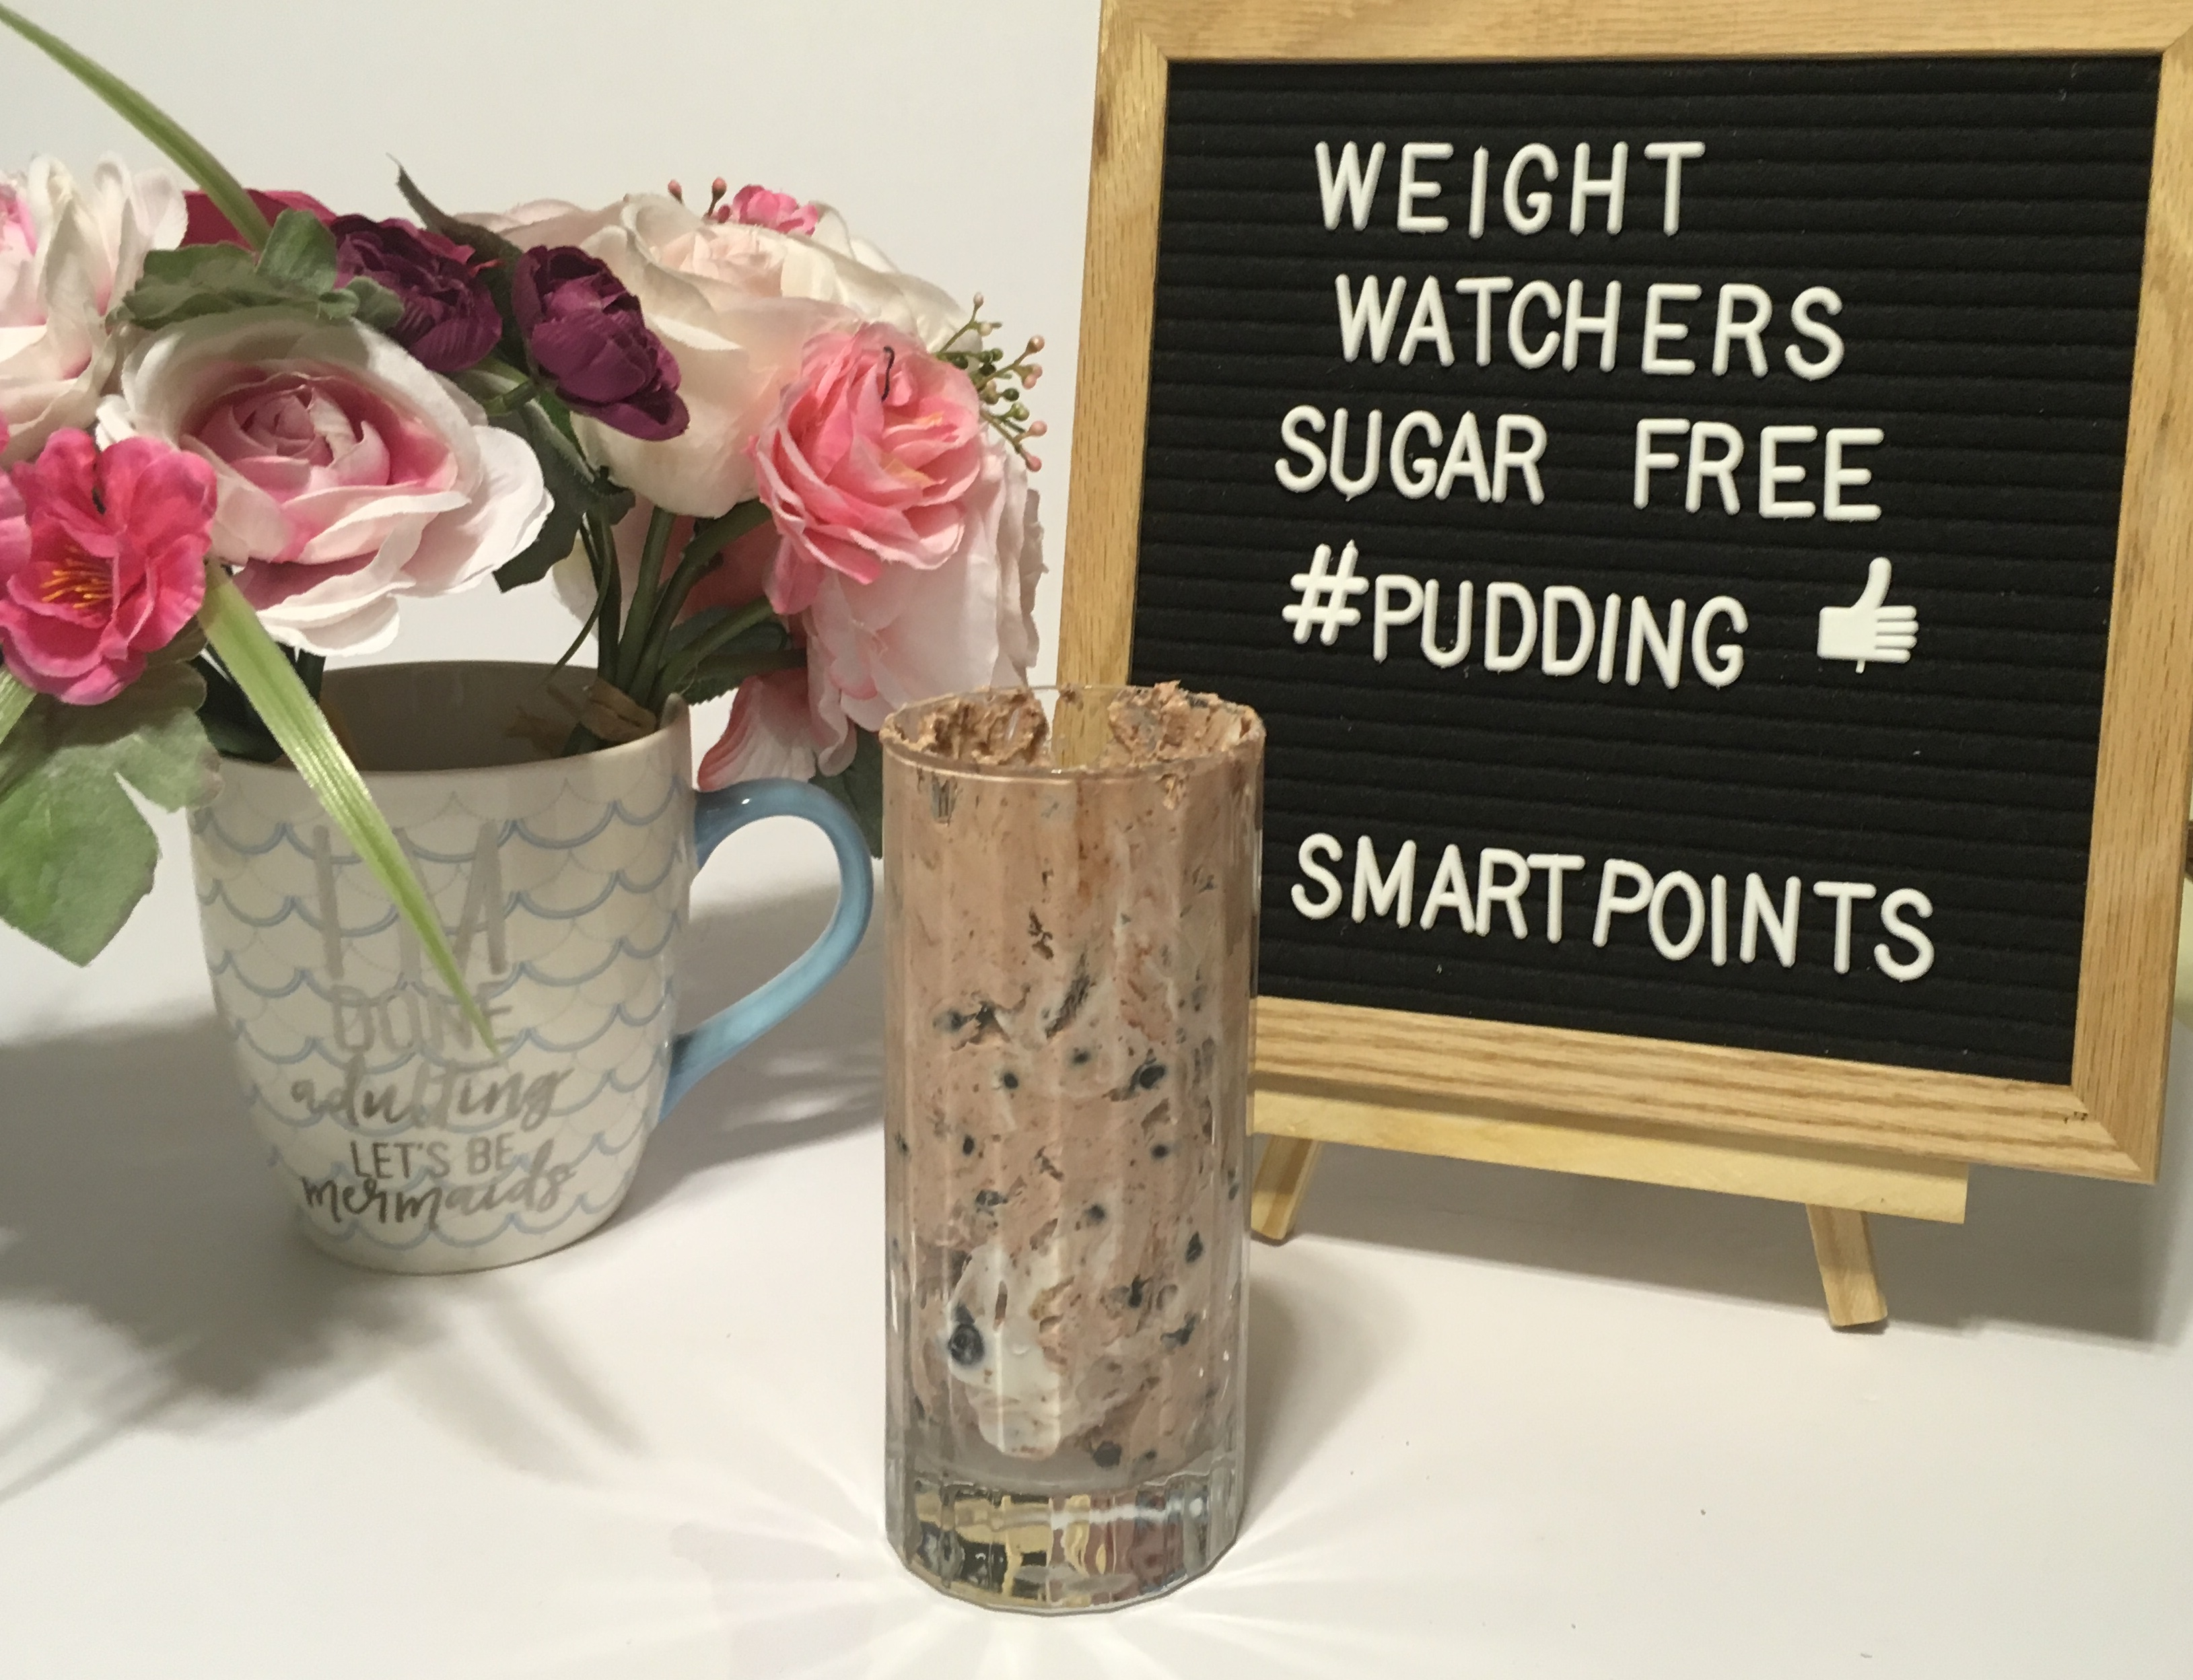 Weight Watchers Sugar Free Pudding Recipe- just 4 Smart Points per serving